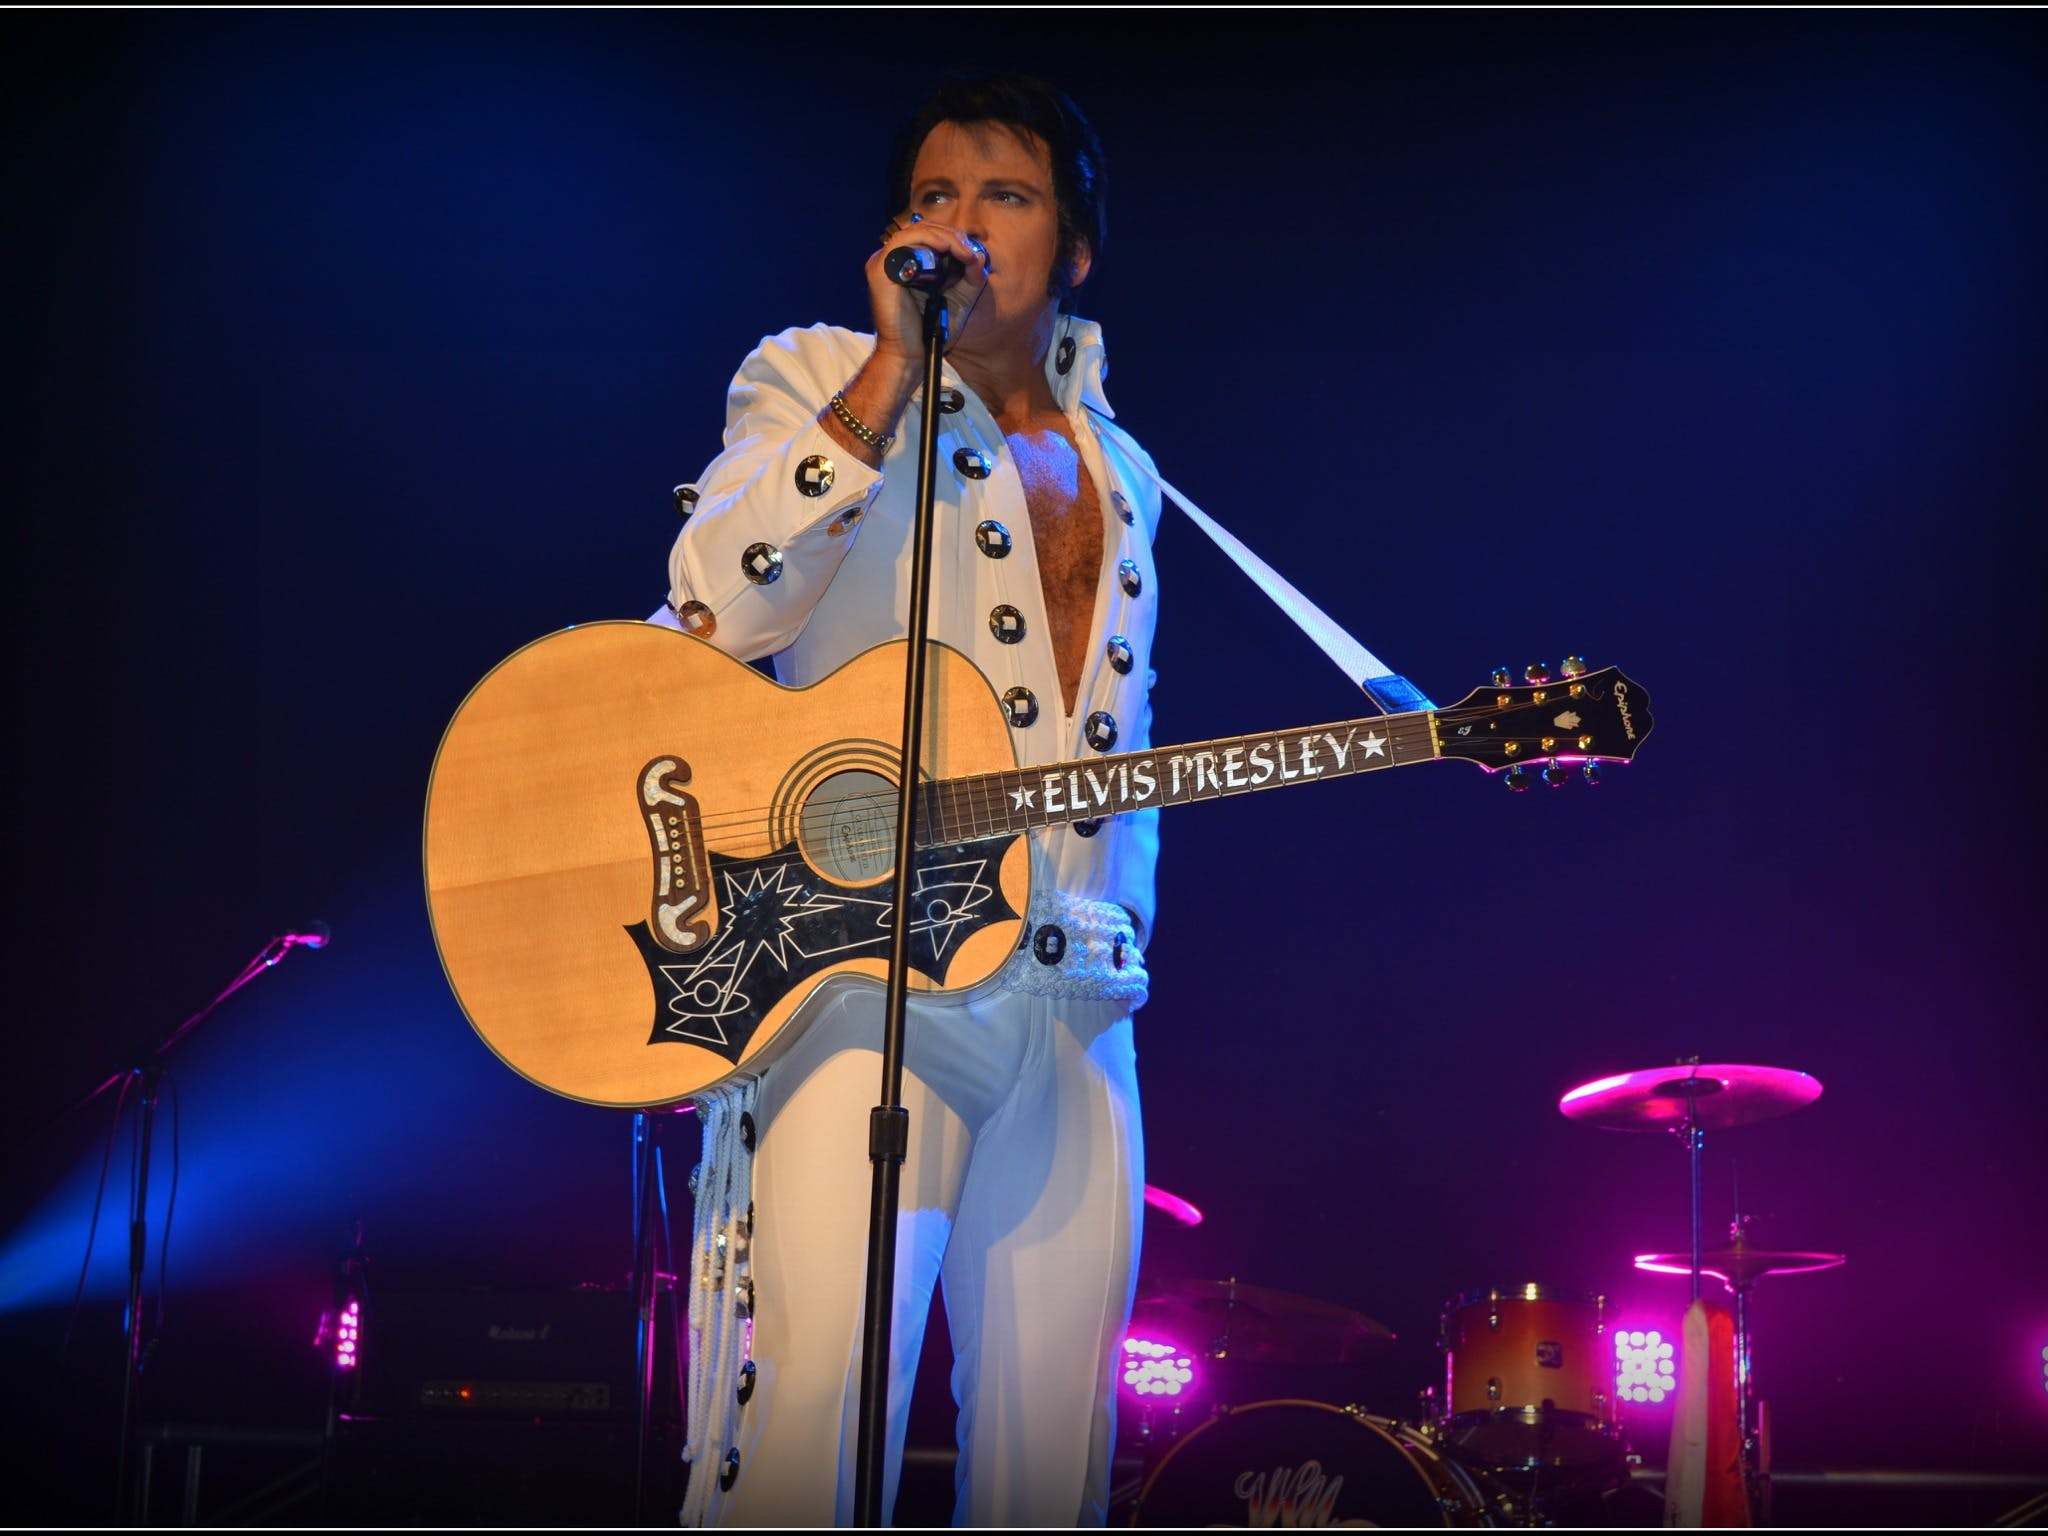 Elvis Forever - Damian Mullin 'Up Close and Personal' - Accommodation Perth